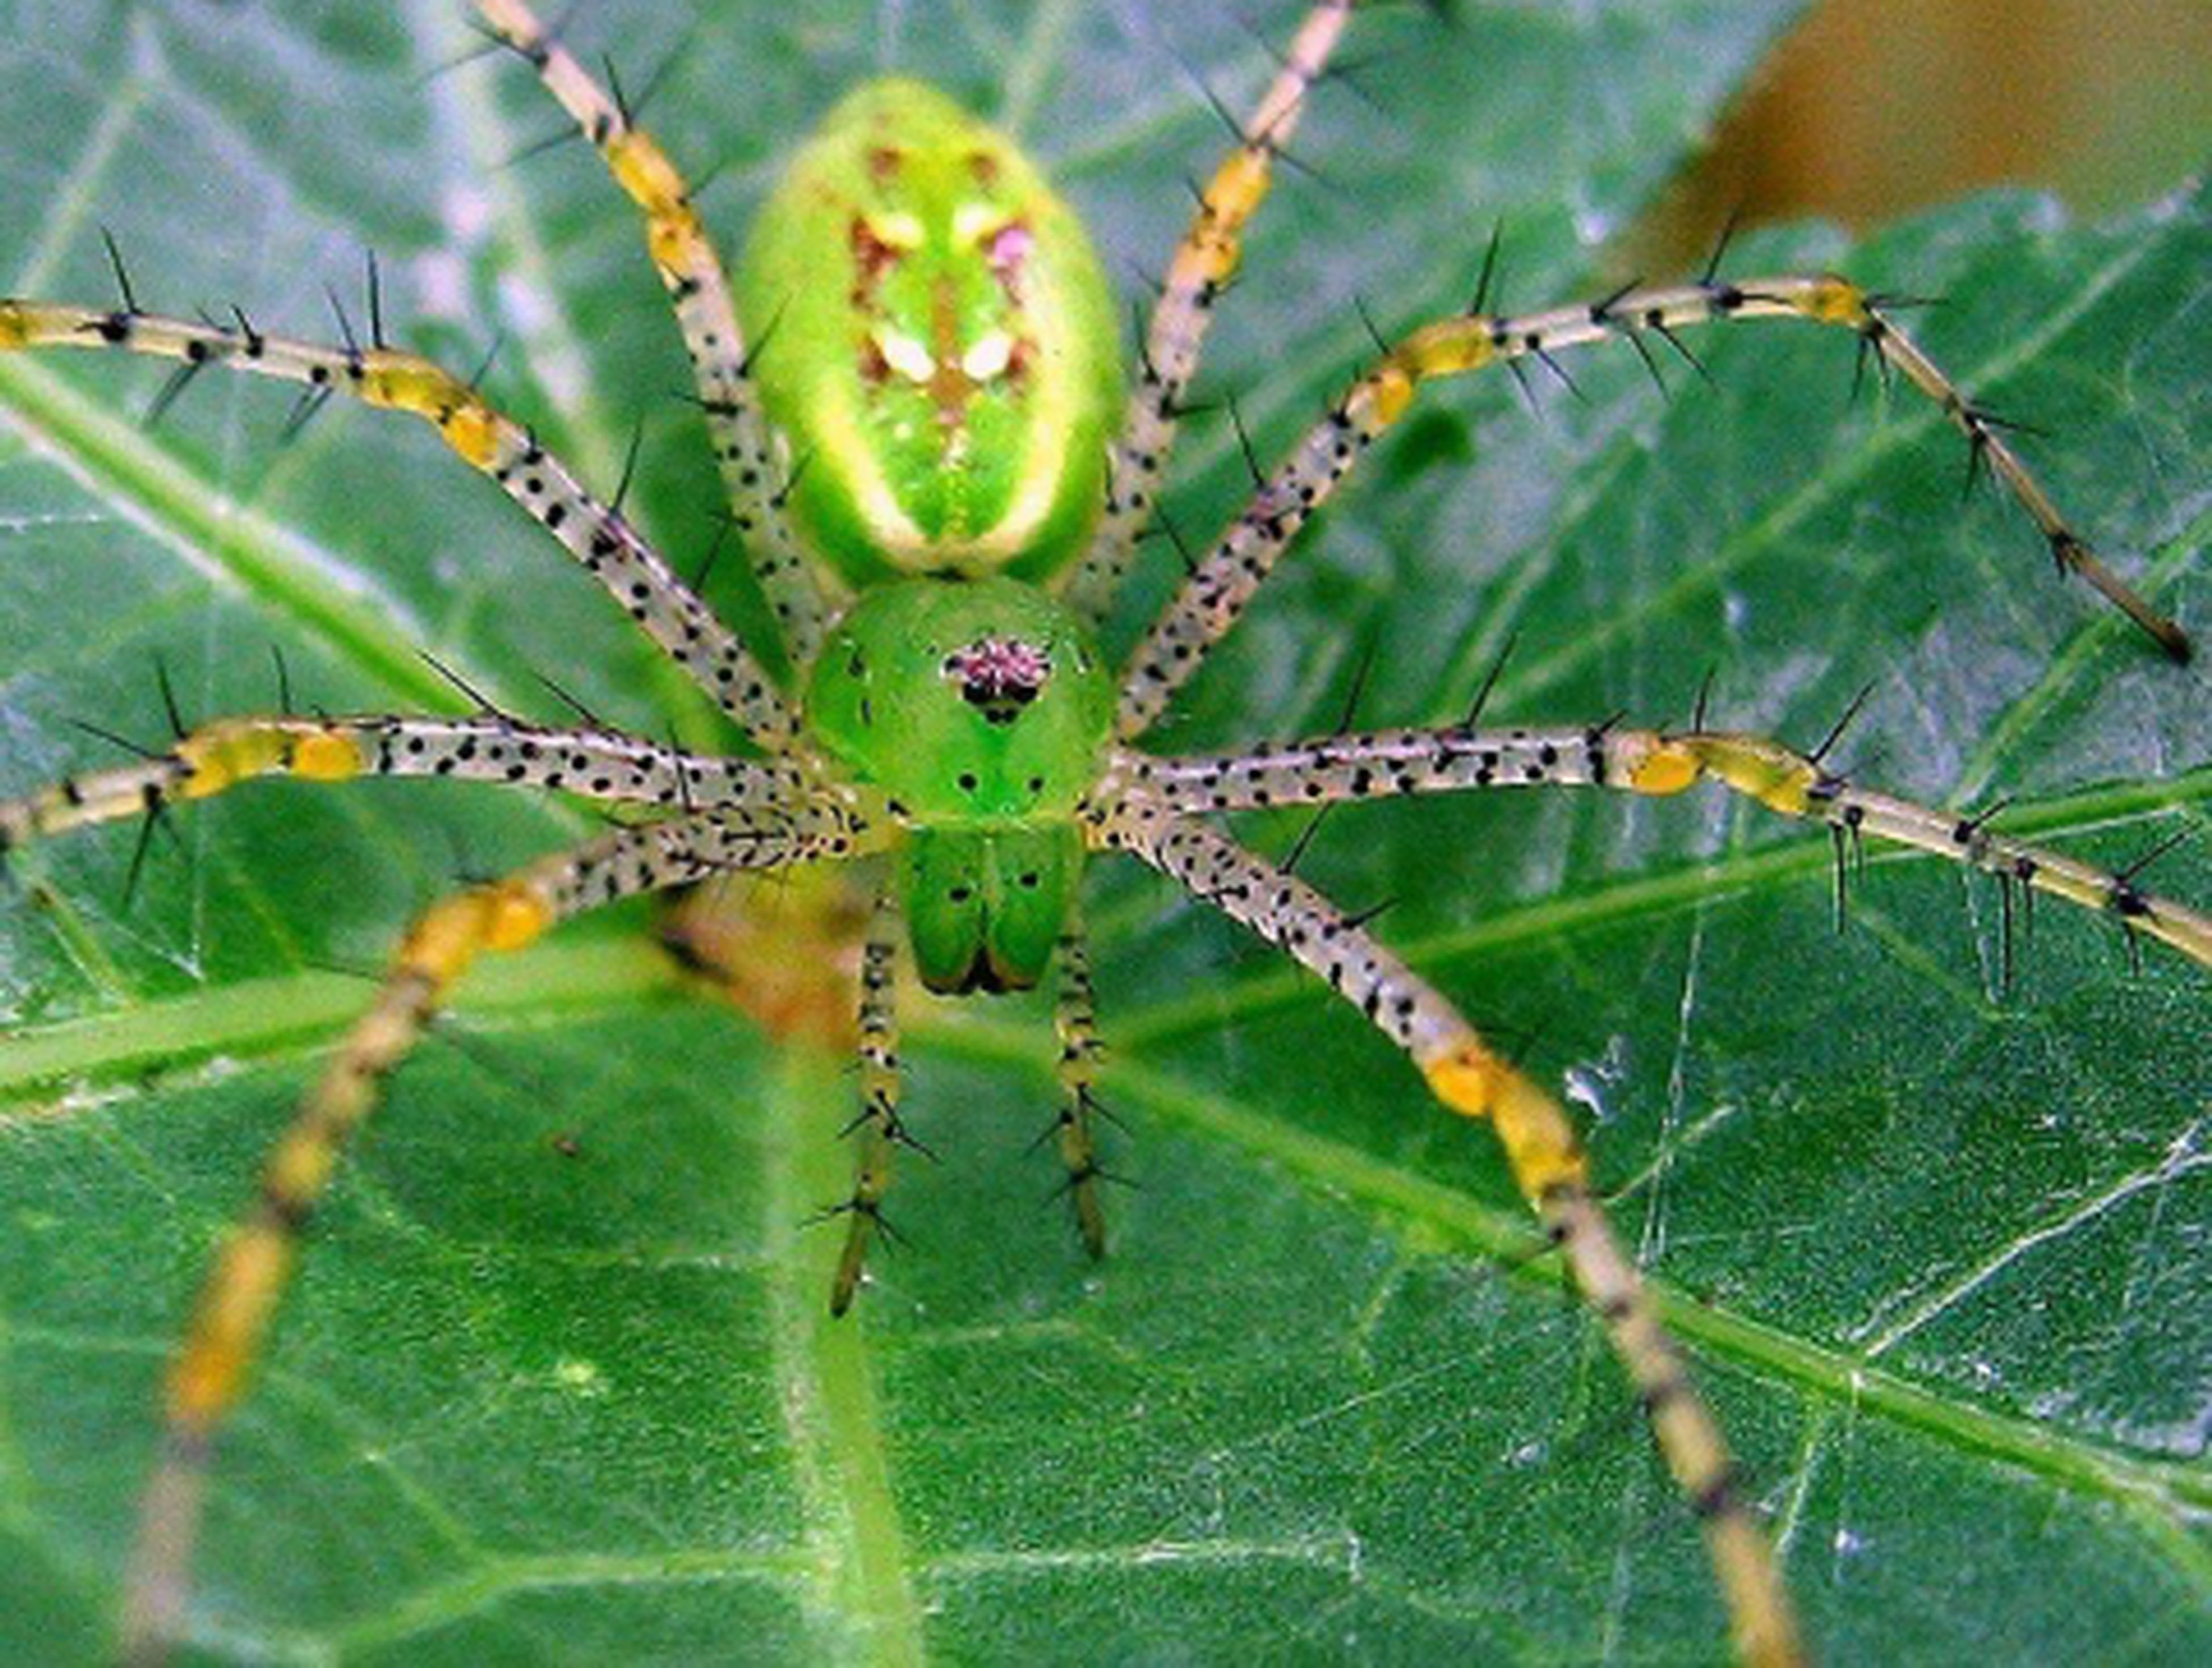 green color, close-up, growth, focus on foreground, nature, leaf, plant, beauty in nature, fragility, spider web, freshness, natural pattern, water, drop, green, wet, dew, day, spiked, outdoors